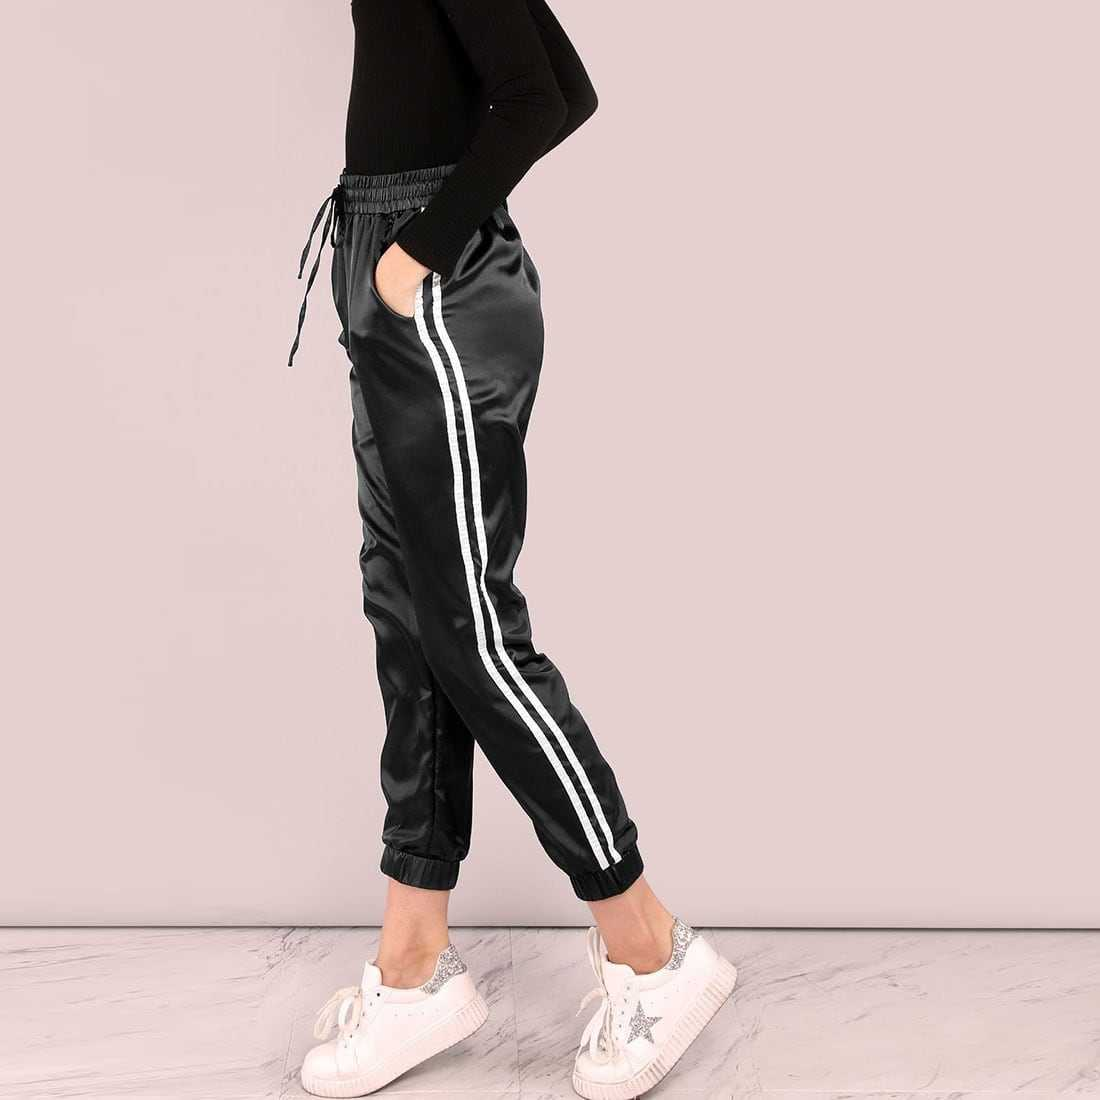 Side Striped Satin Trainer Joggers in Black by ROMWE on GOOFASH